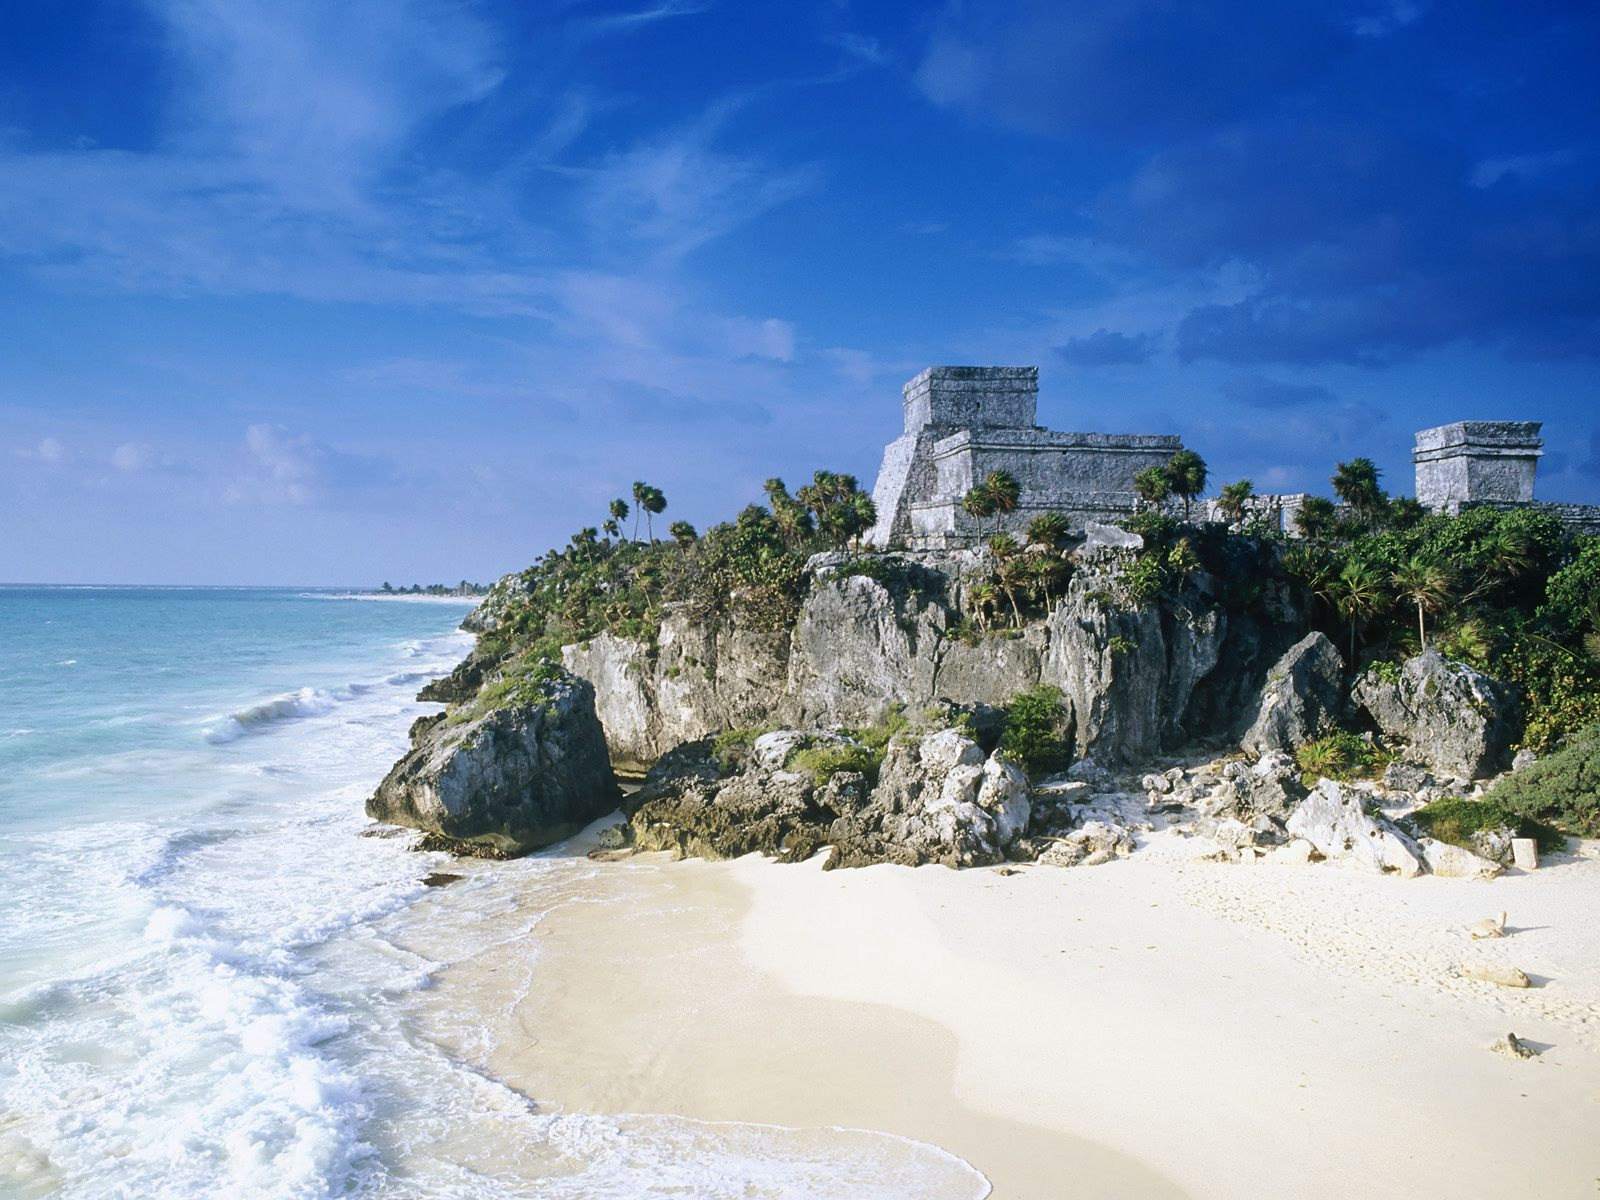 Mayan Ruins Tulum Mexico Wallpapers HD Wallpapers 1600x1200